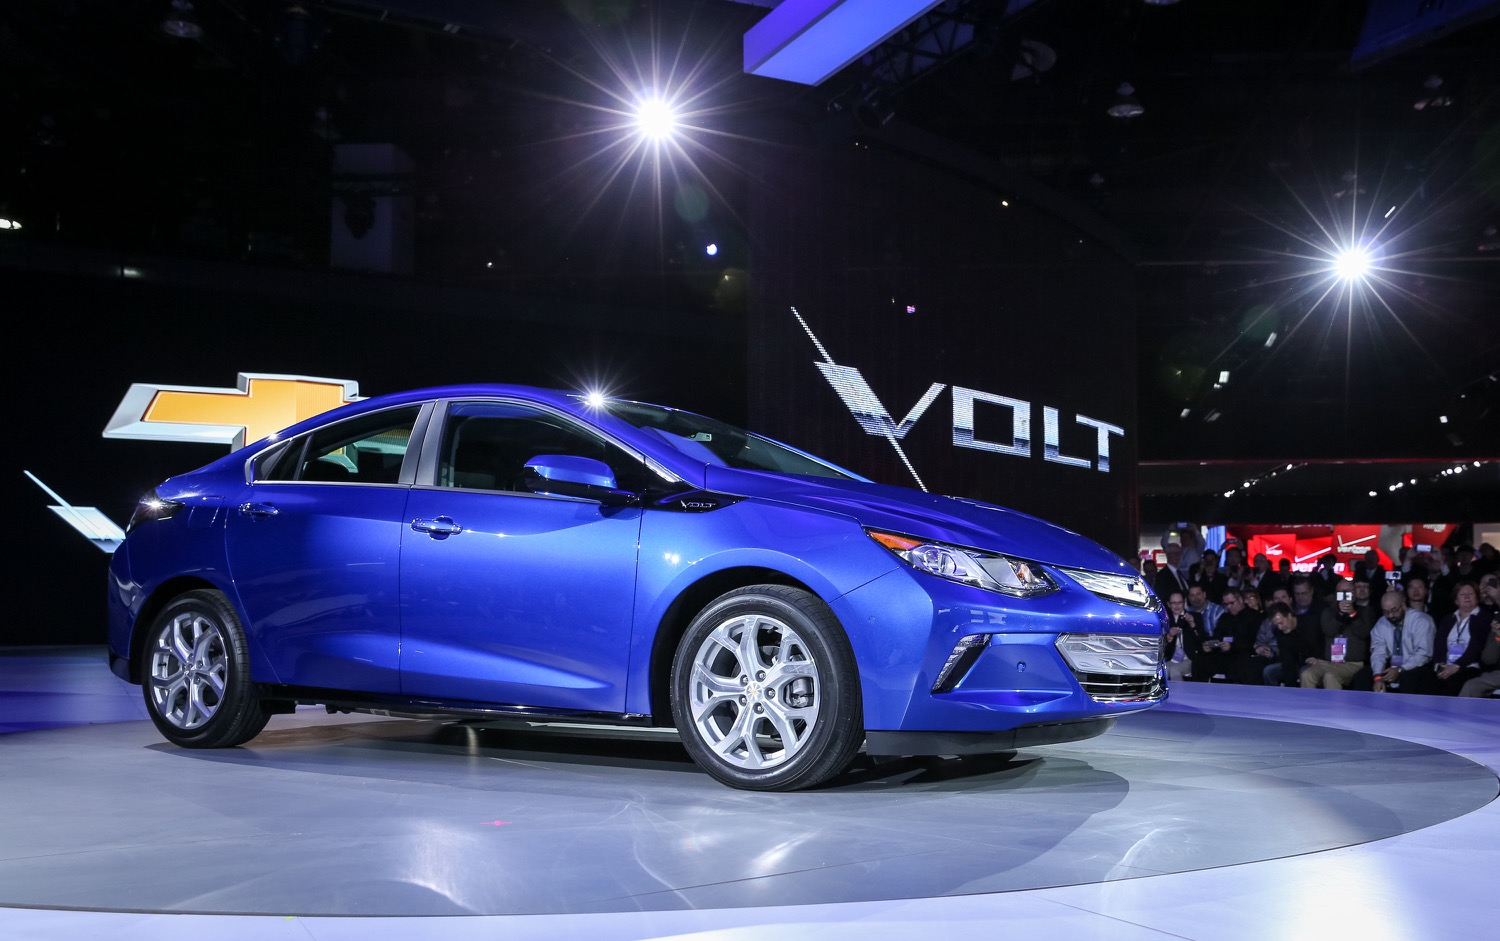 Chevrolet Reveals Their New Electric Car International Auto Show